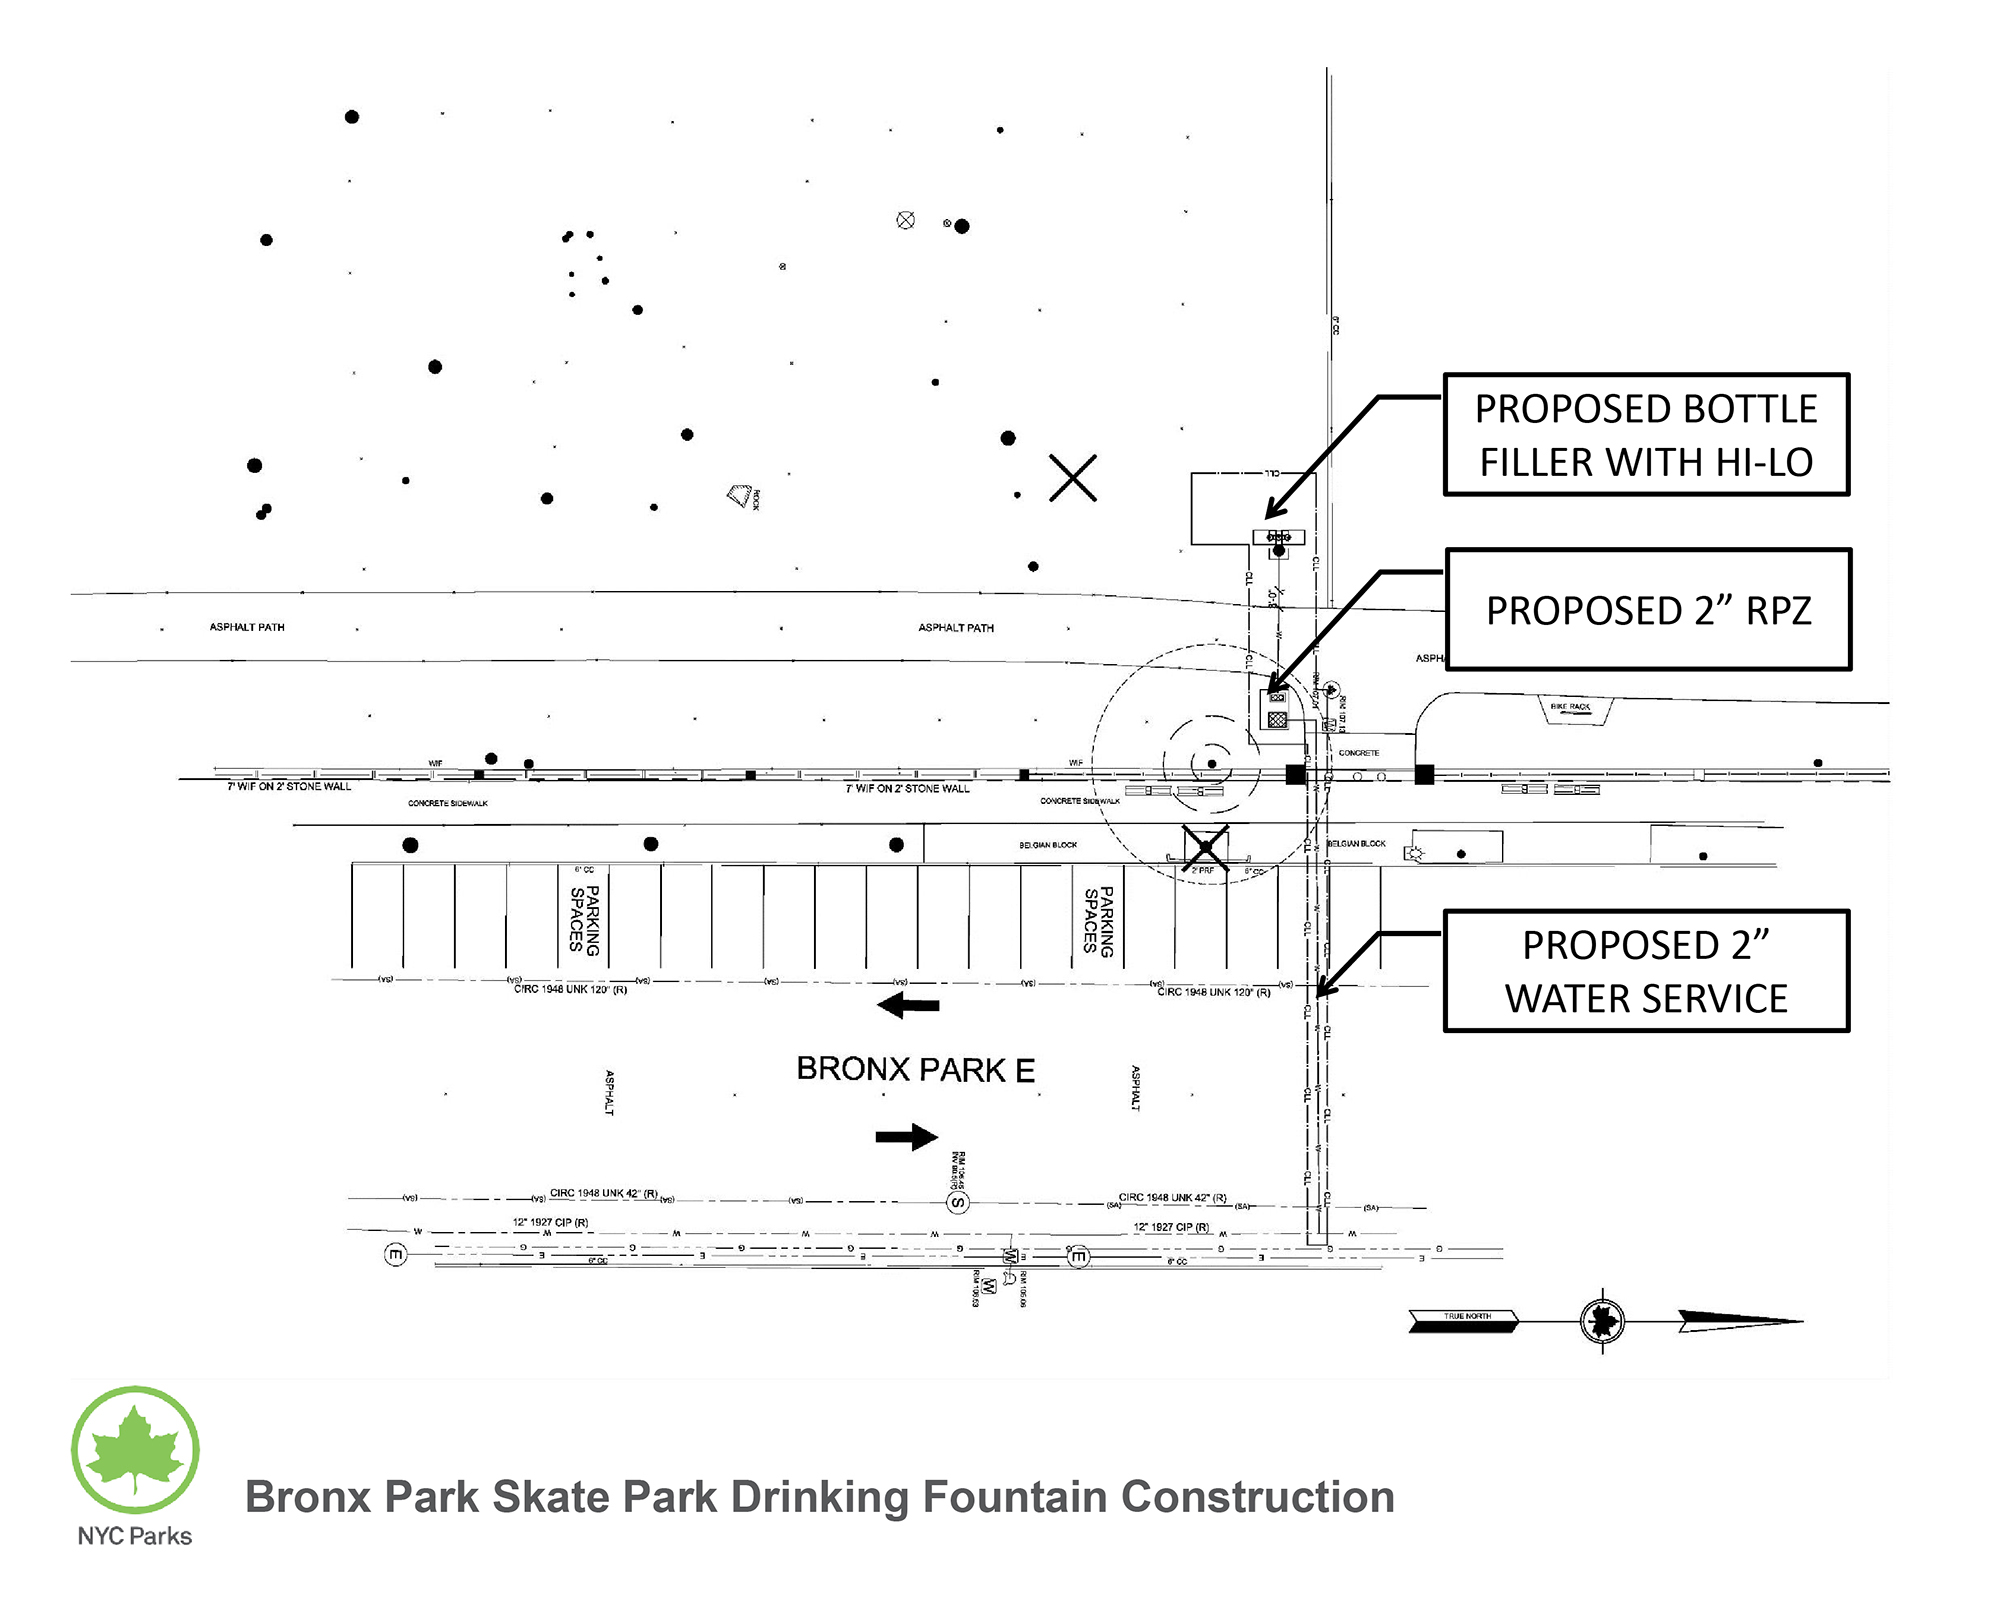 Design of Bronx Park Skate Park Drinking Fountain Construction